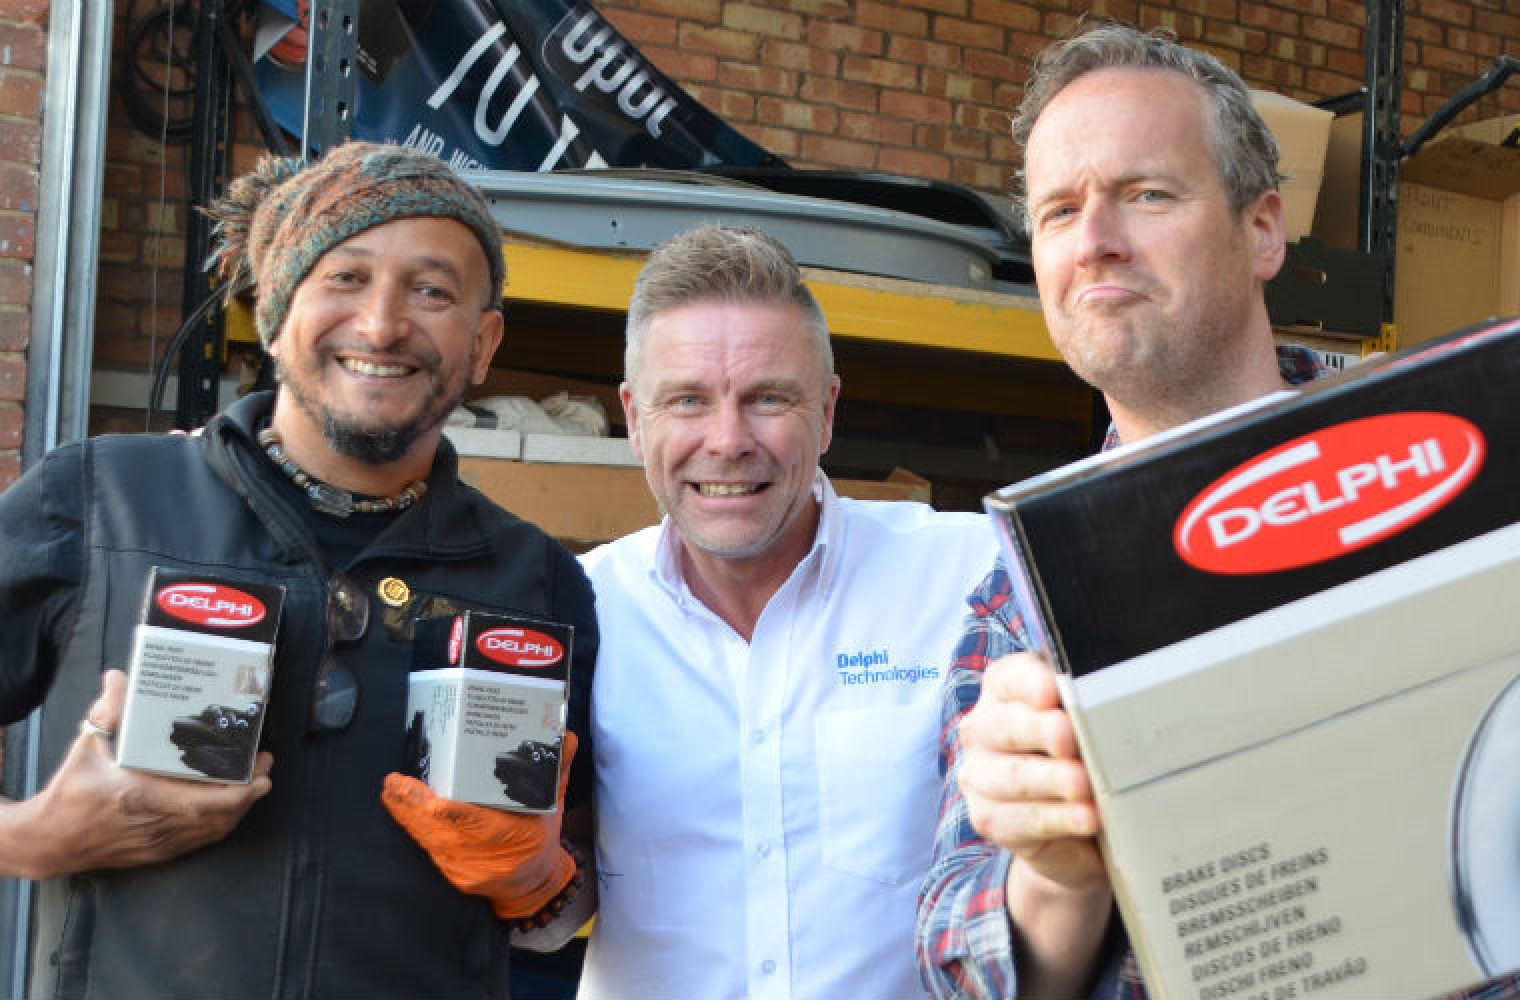 Delphi Technologies steps in to support TV's Car SOS